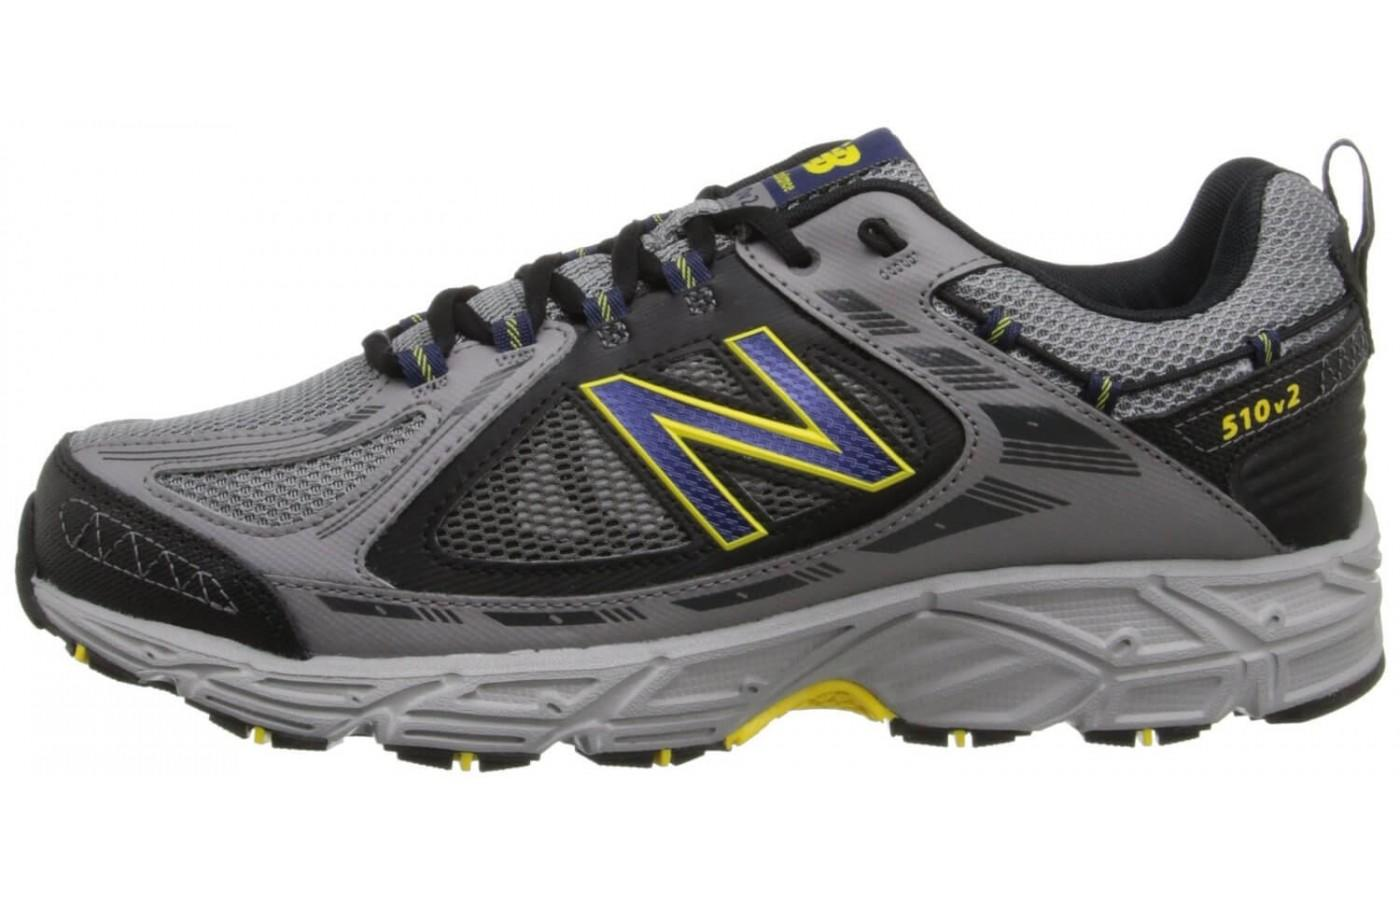 With an emphasis on function over form, the New Balance MT510 is a bit of an eyesore.